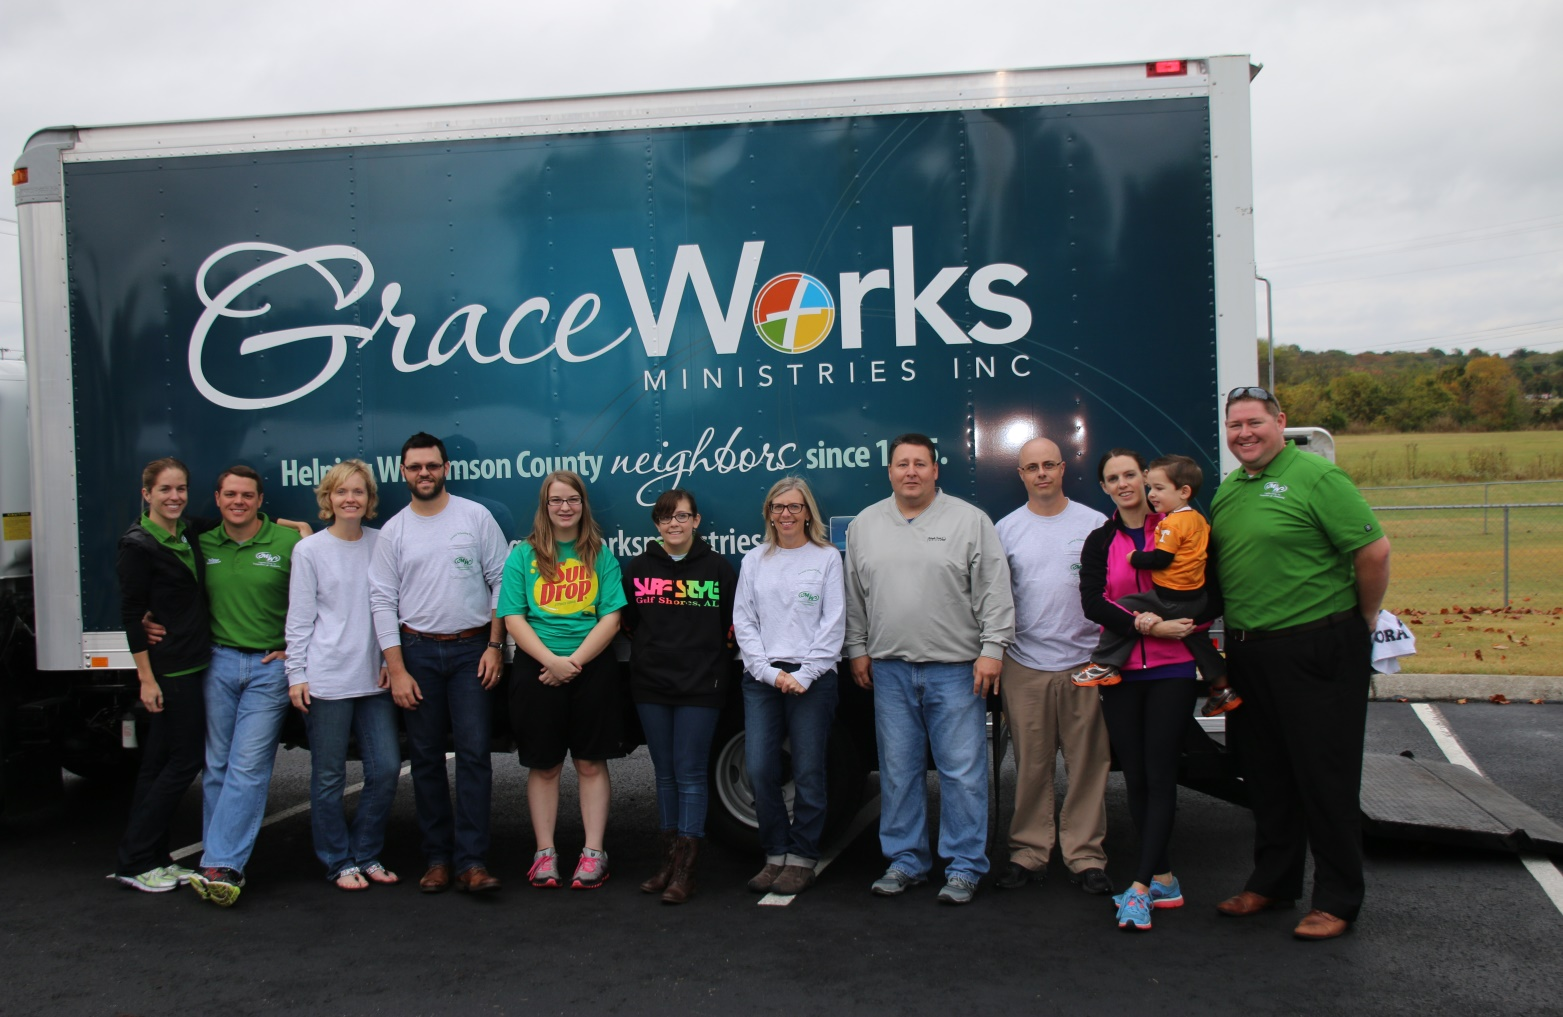 M&W Logistics Group Supports the Second Harvest Food Bank of Middle Tennessee With Grace Works